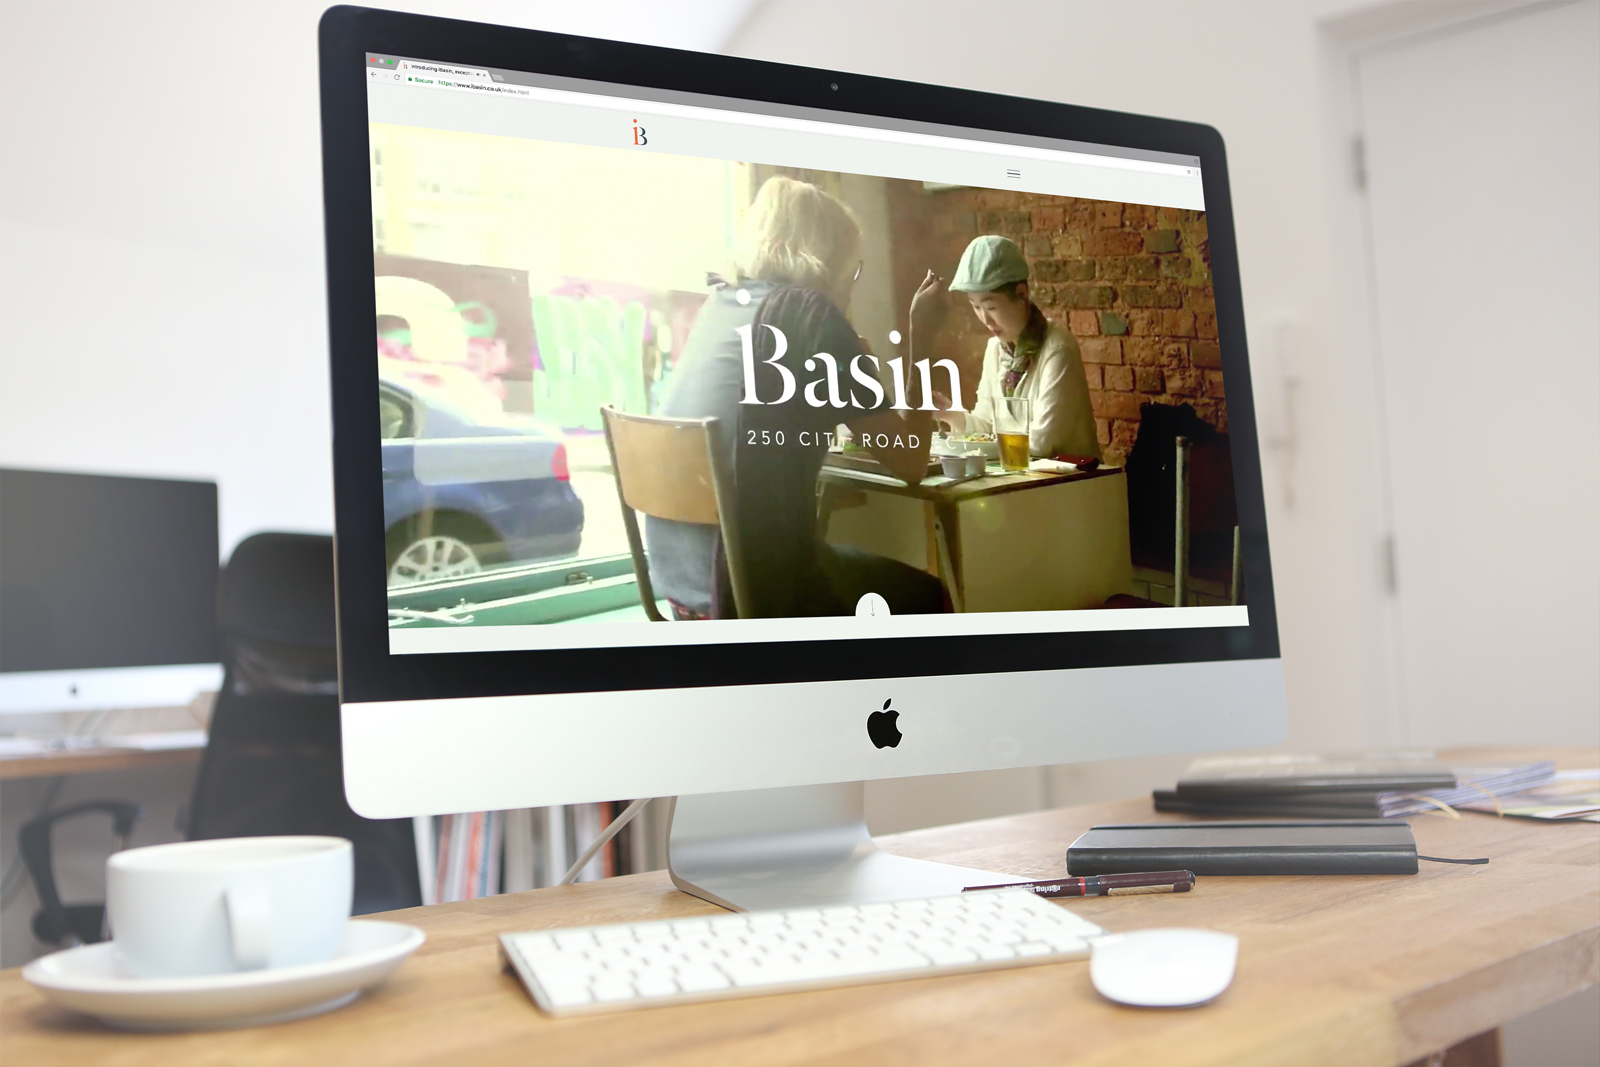 Bespoke WordPress website design & build for the Berkeley Groups new commercial development in the heart of London's Tech City, iBasin